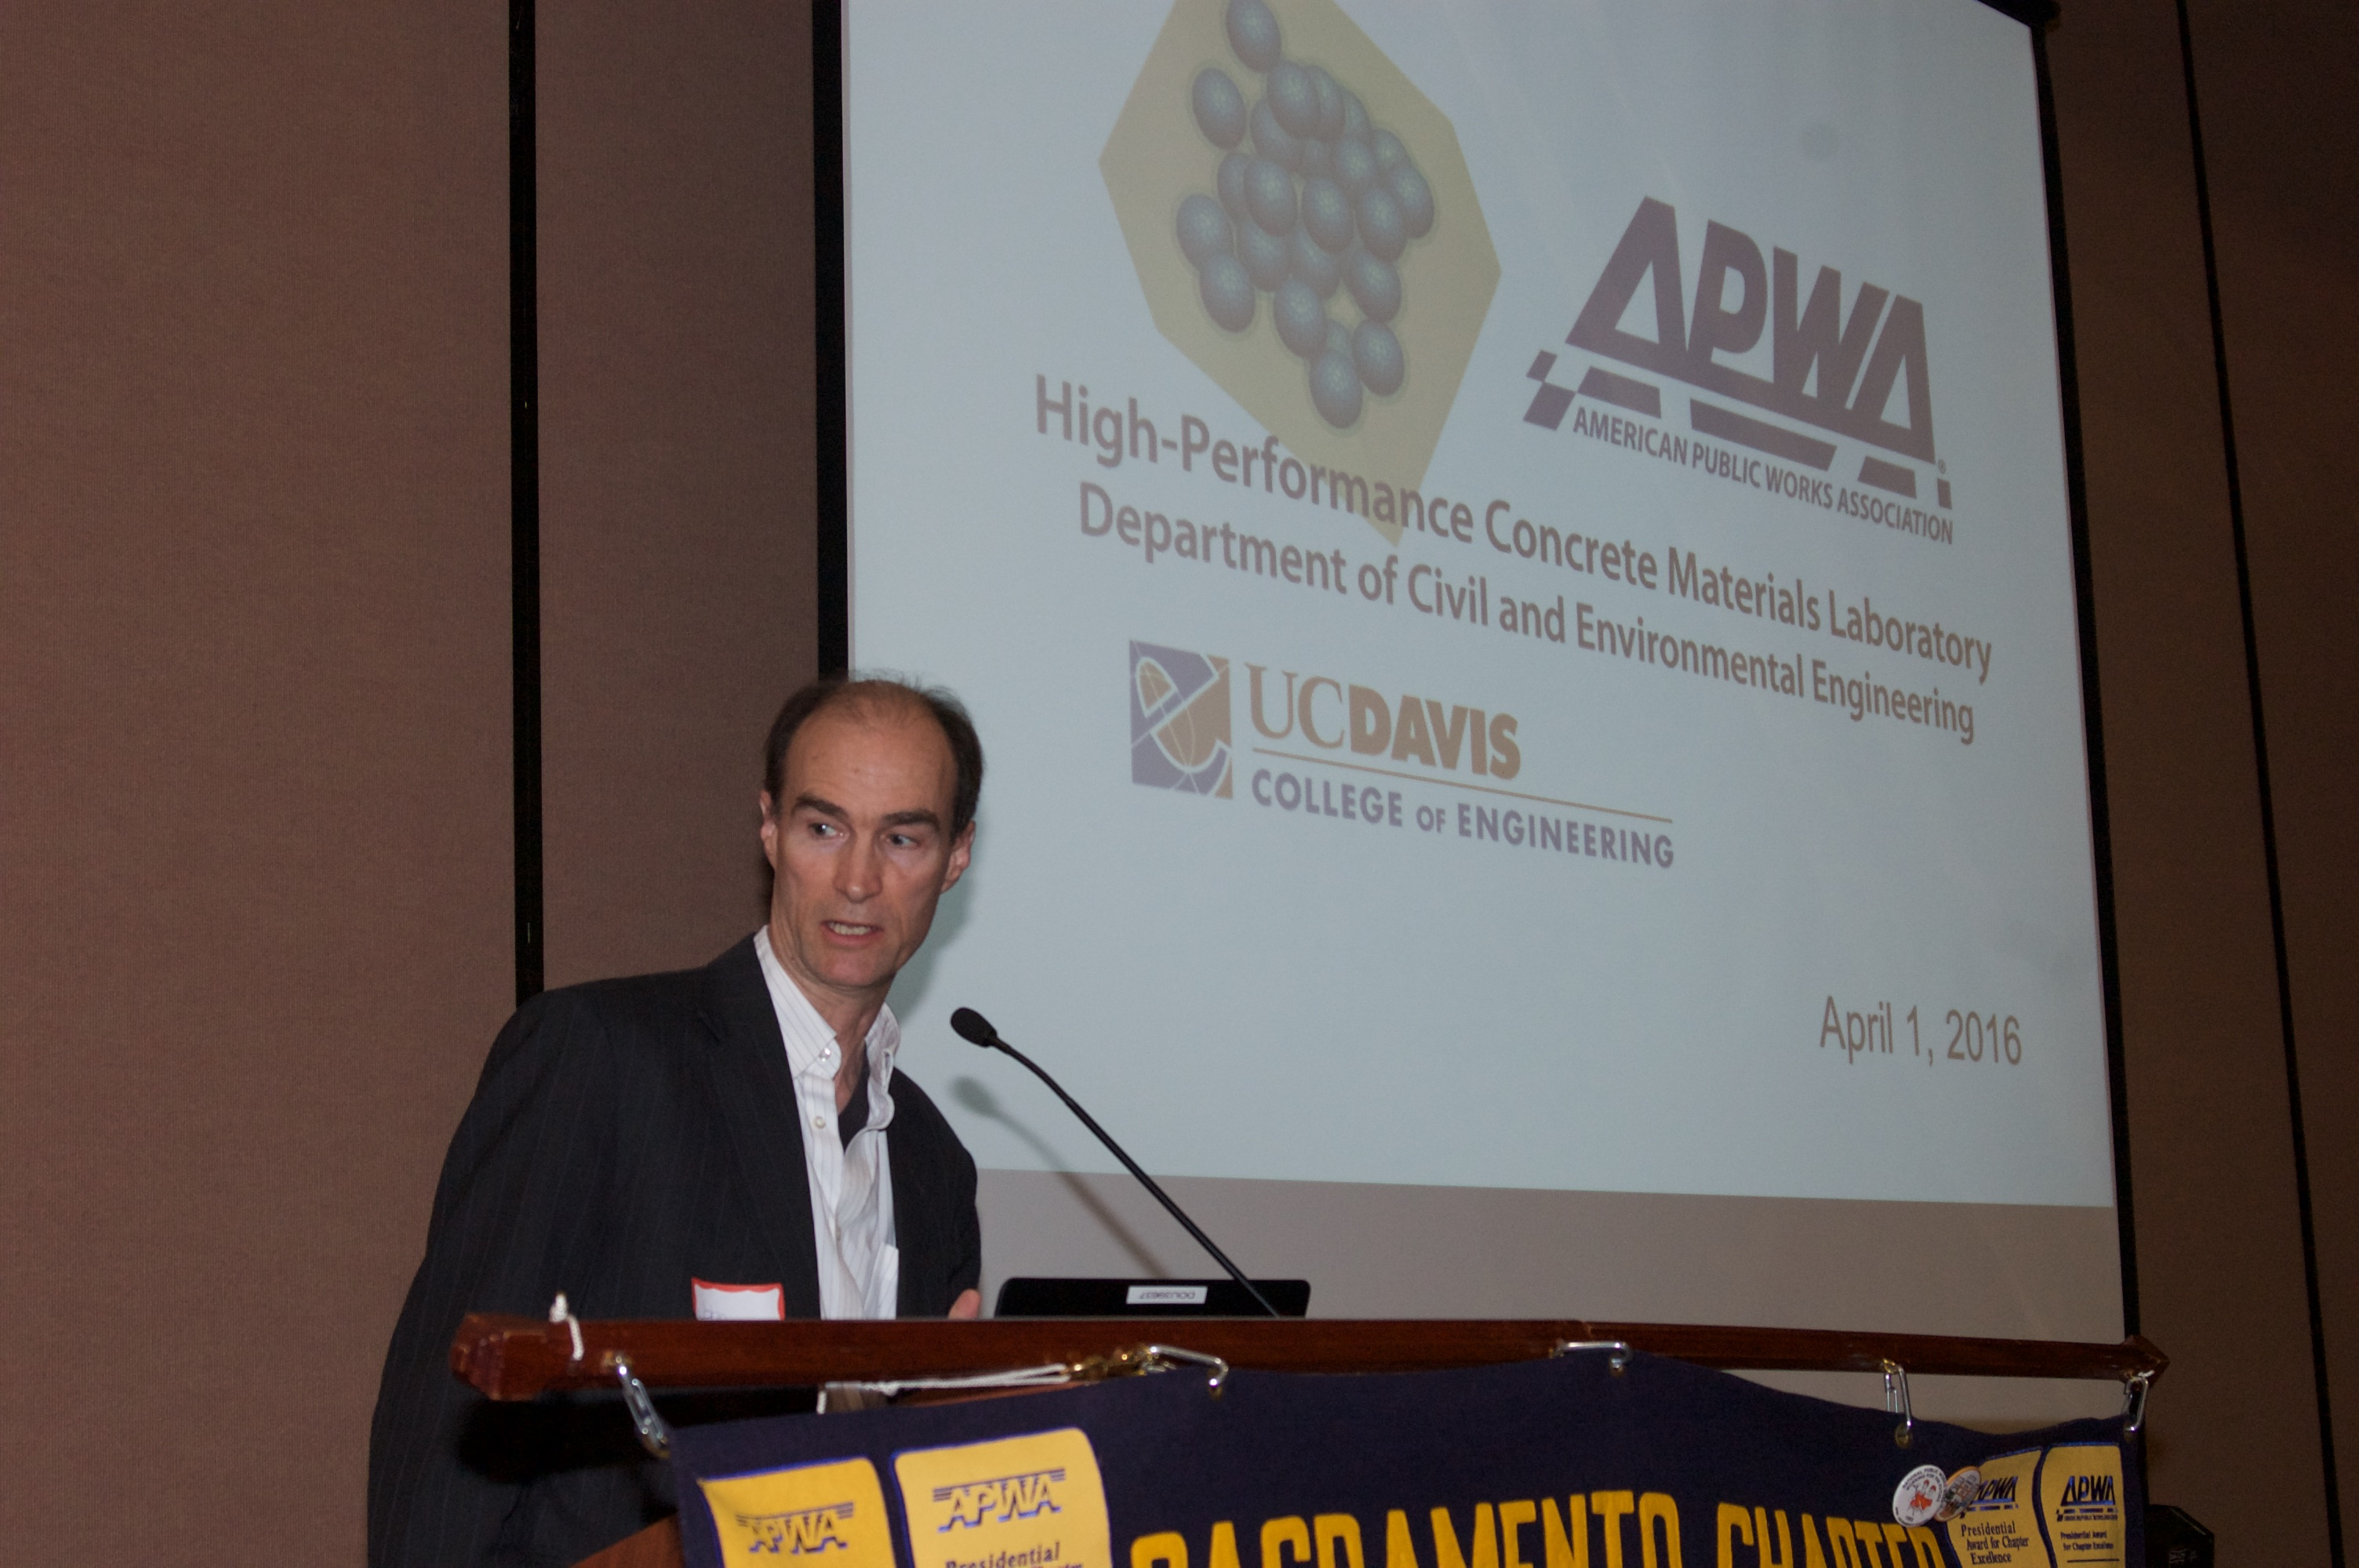 APWA April 2016, PWI and Past Presidents 1.jpg